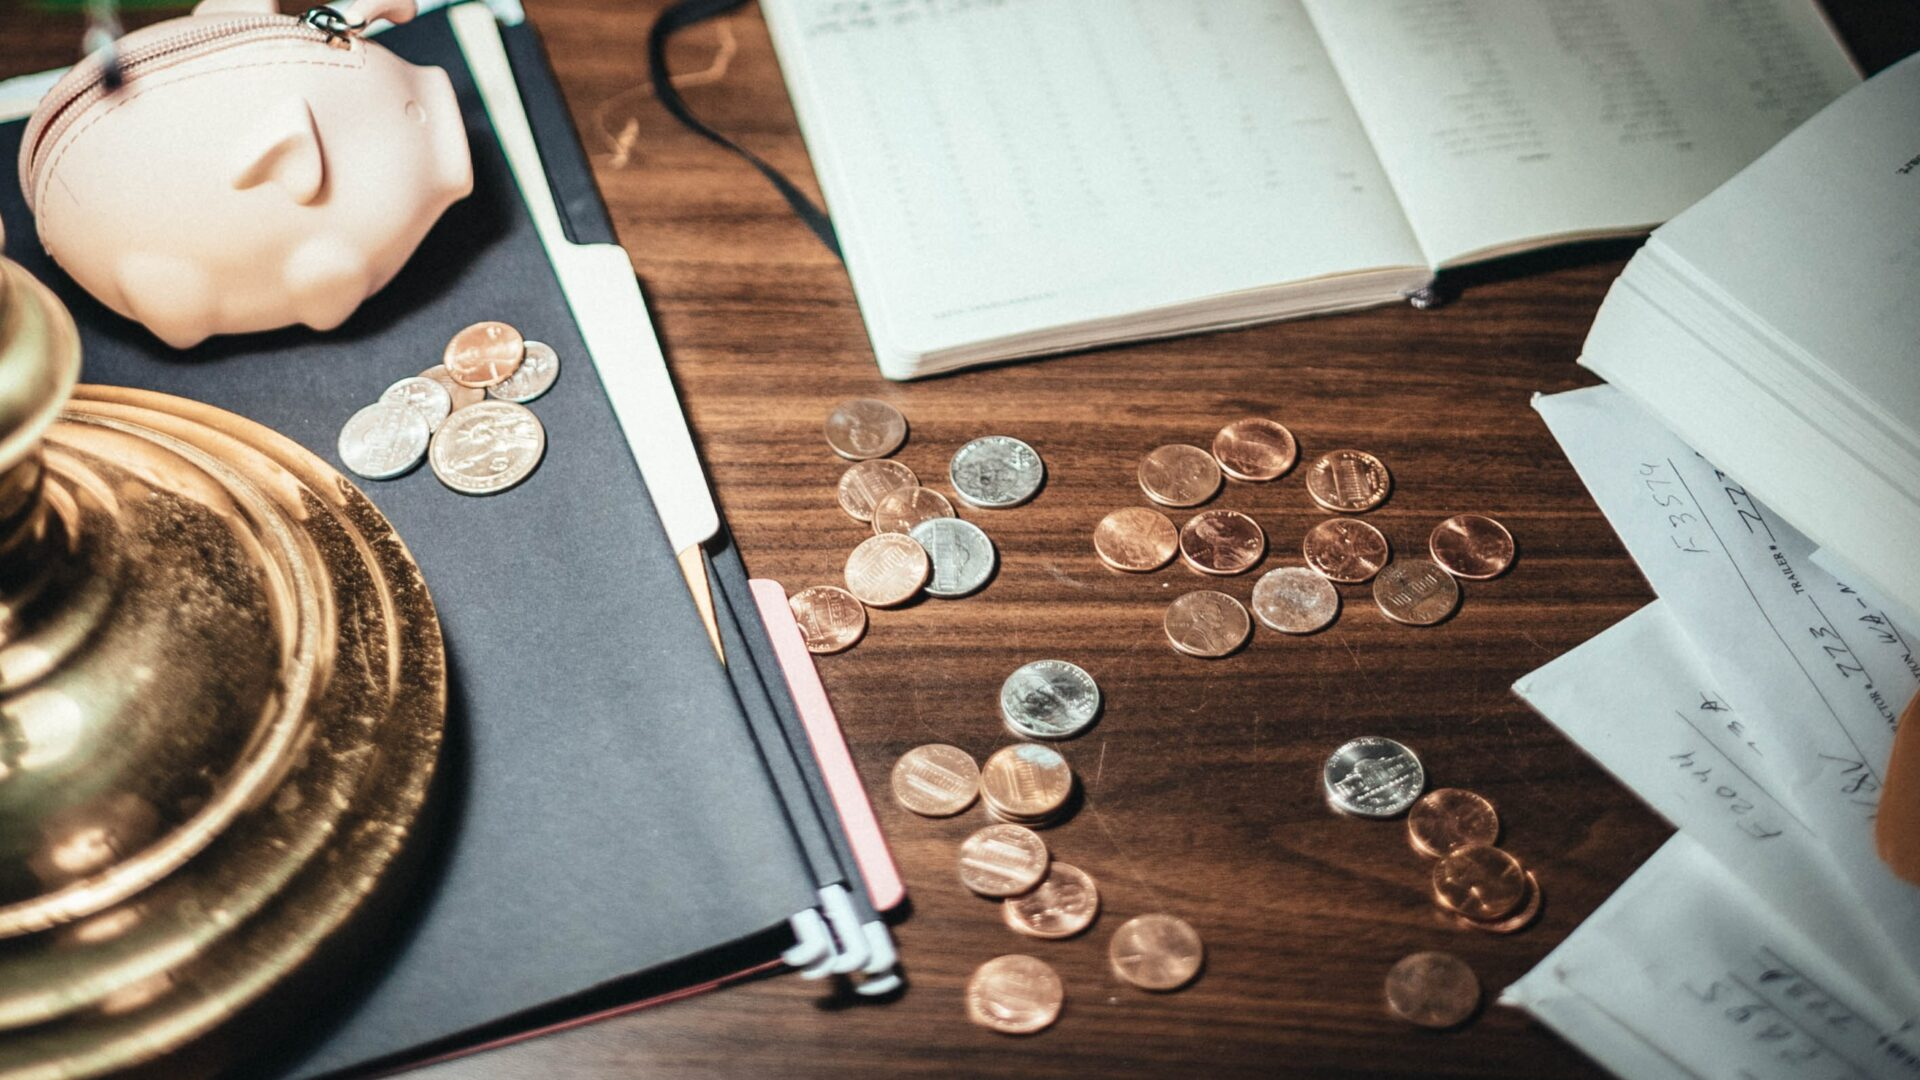 Wood desk with coins, piggy bank and accounting documents